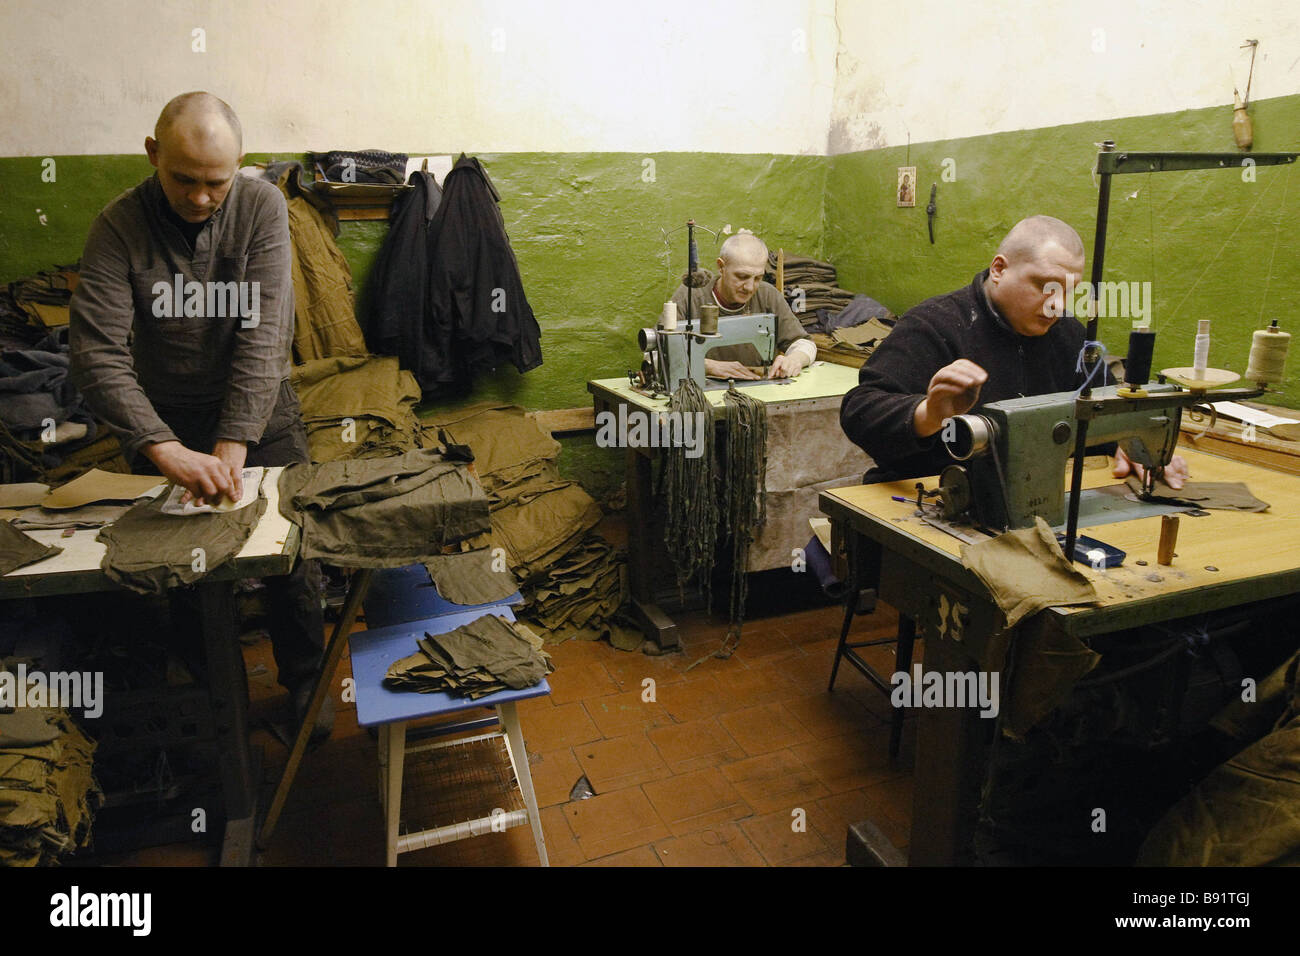 Manufacturing mittens at Penitentiary No 5 for convicts serving life sentences on Ognenny Fiery Island in the Vologda - Stock Image